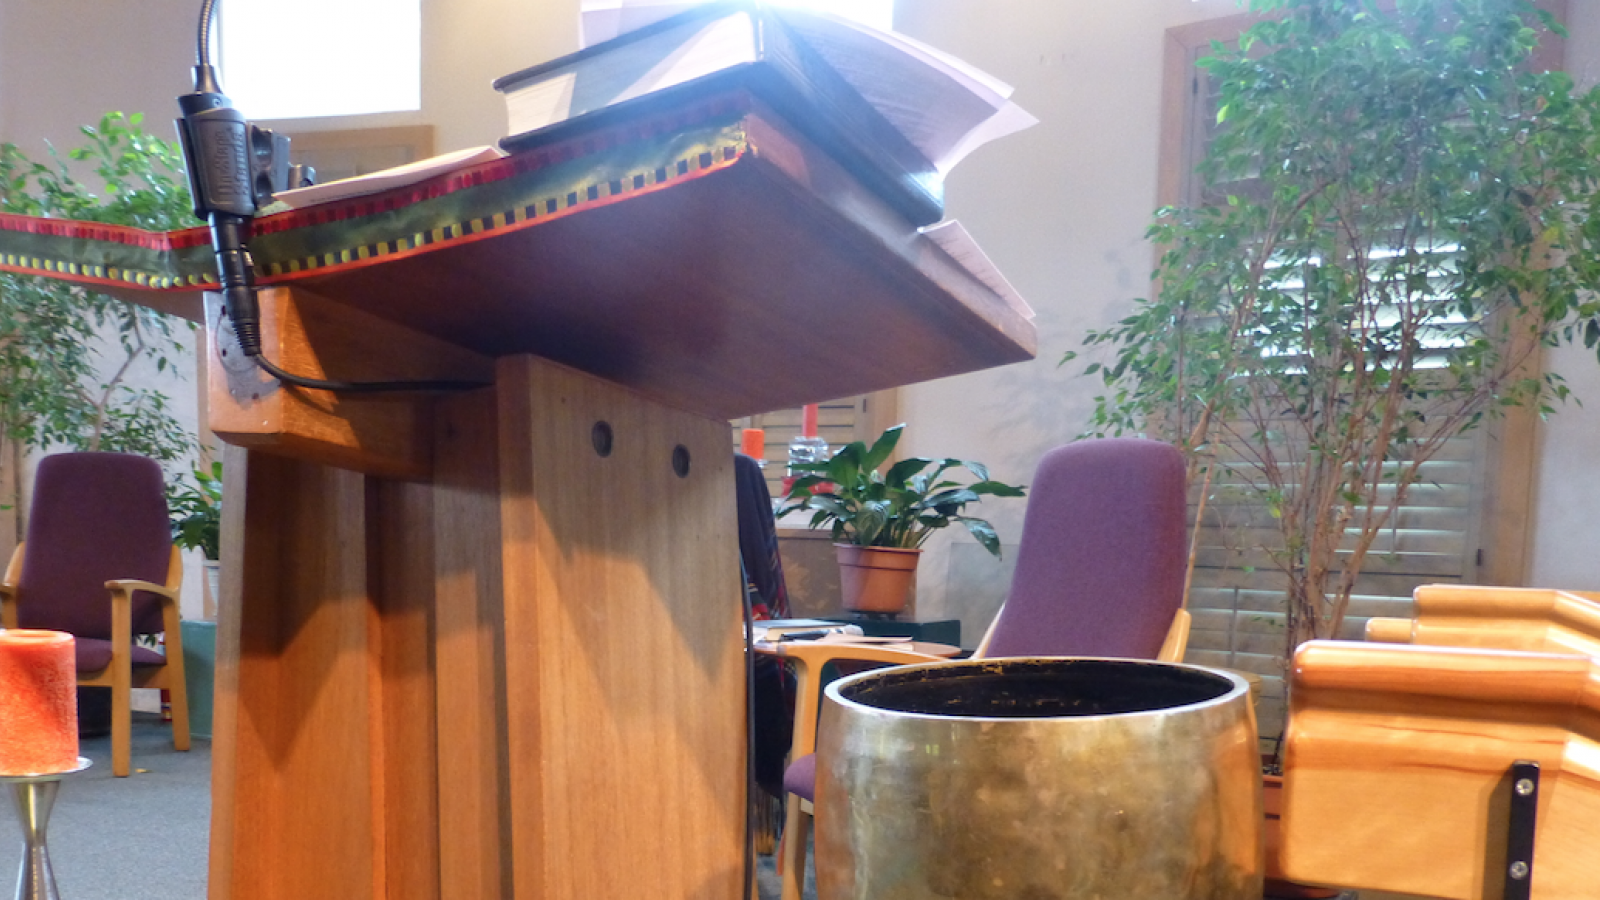 Pulpit and Temple Bell at First Unitarian Universalist Church of Columbus